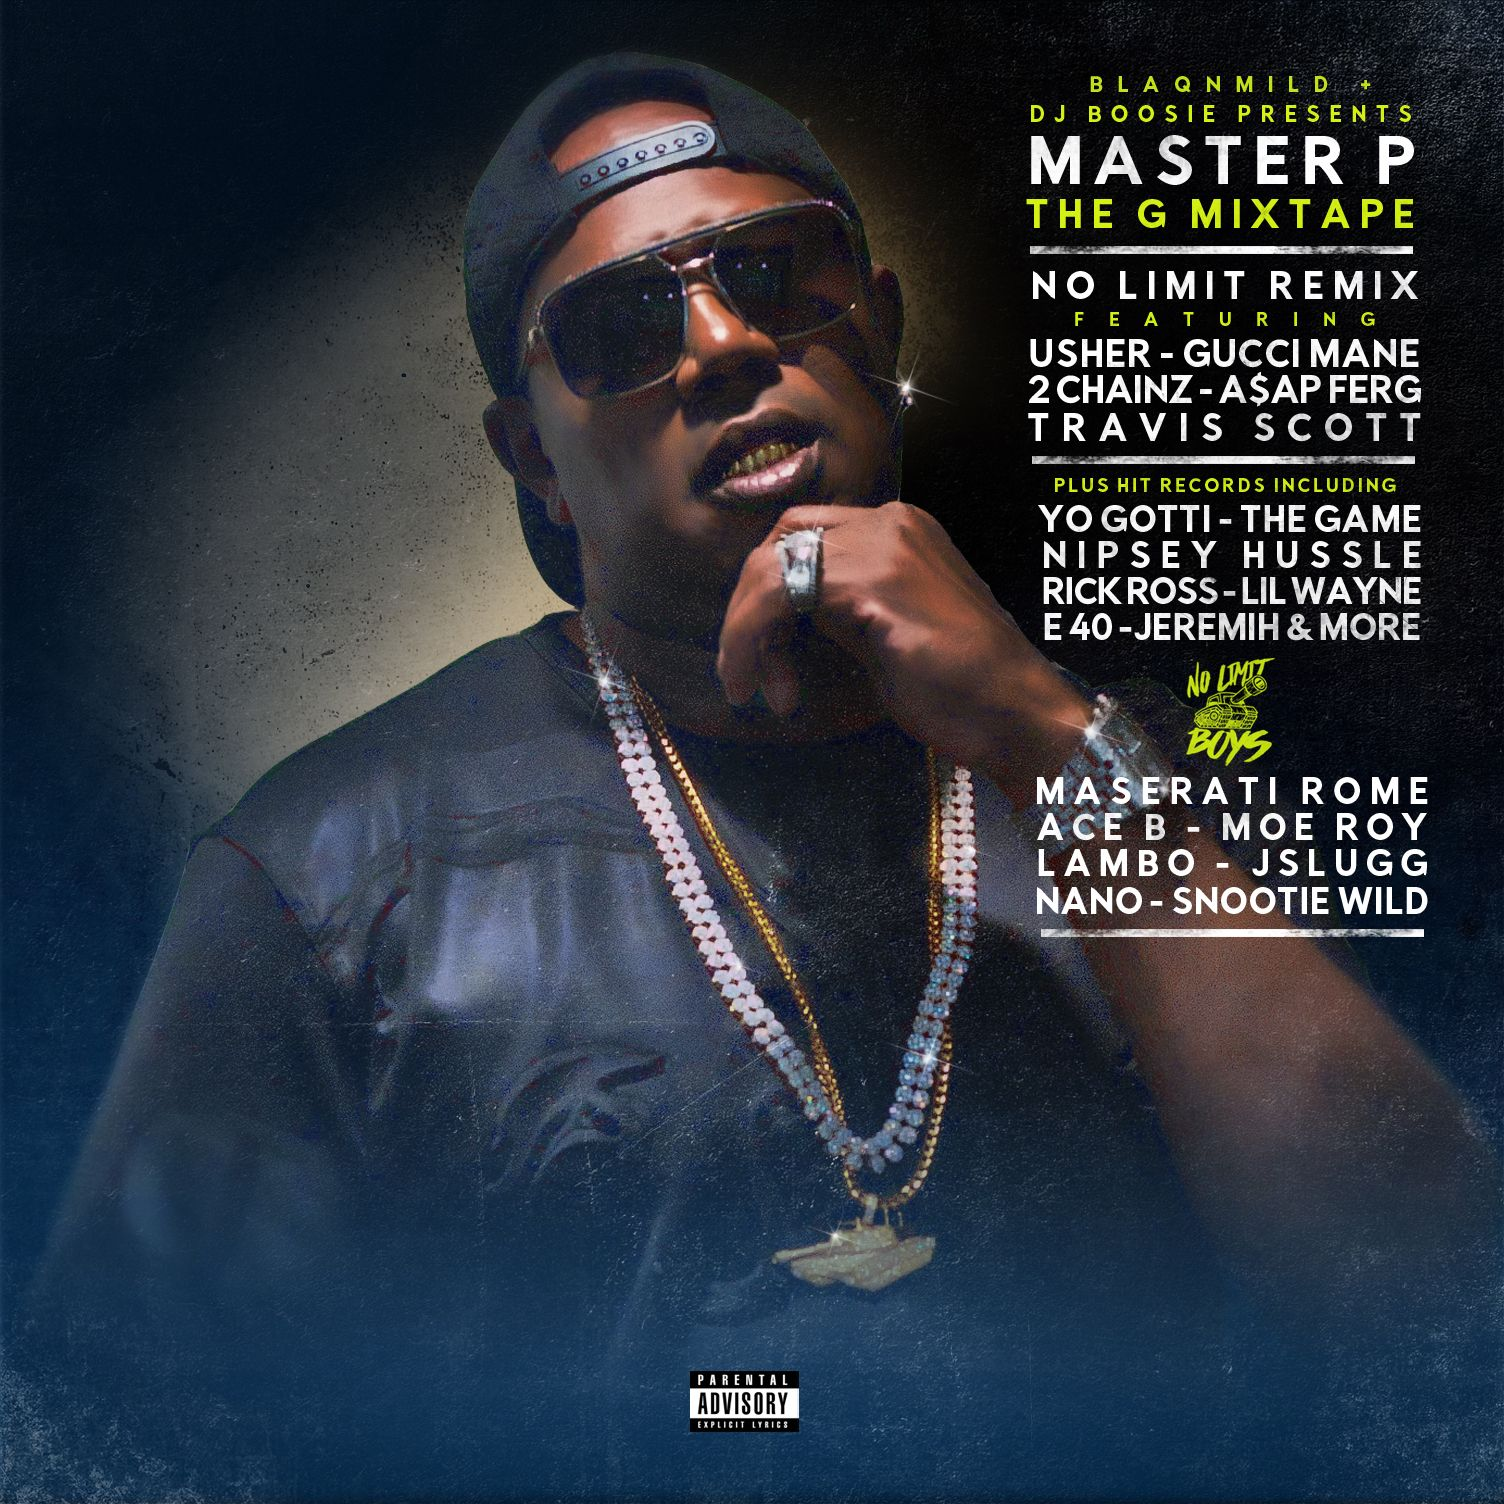 MASTER P - G MIXTAPE by MASTER P, from blizo: Listen for Free